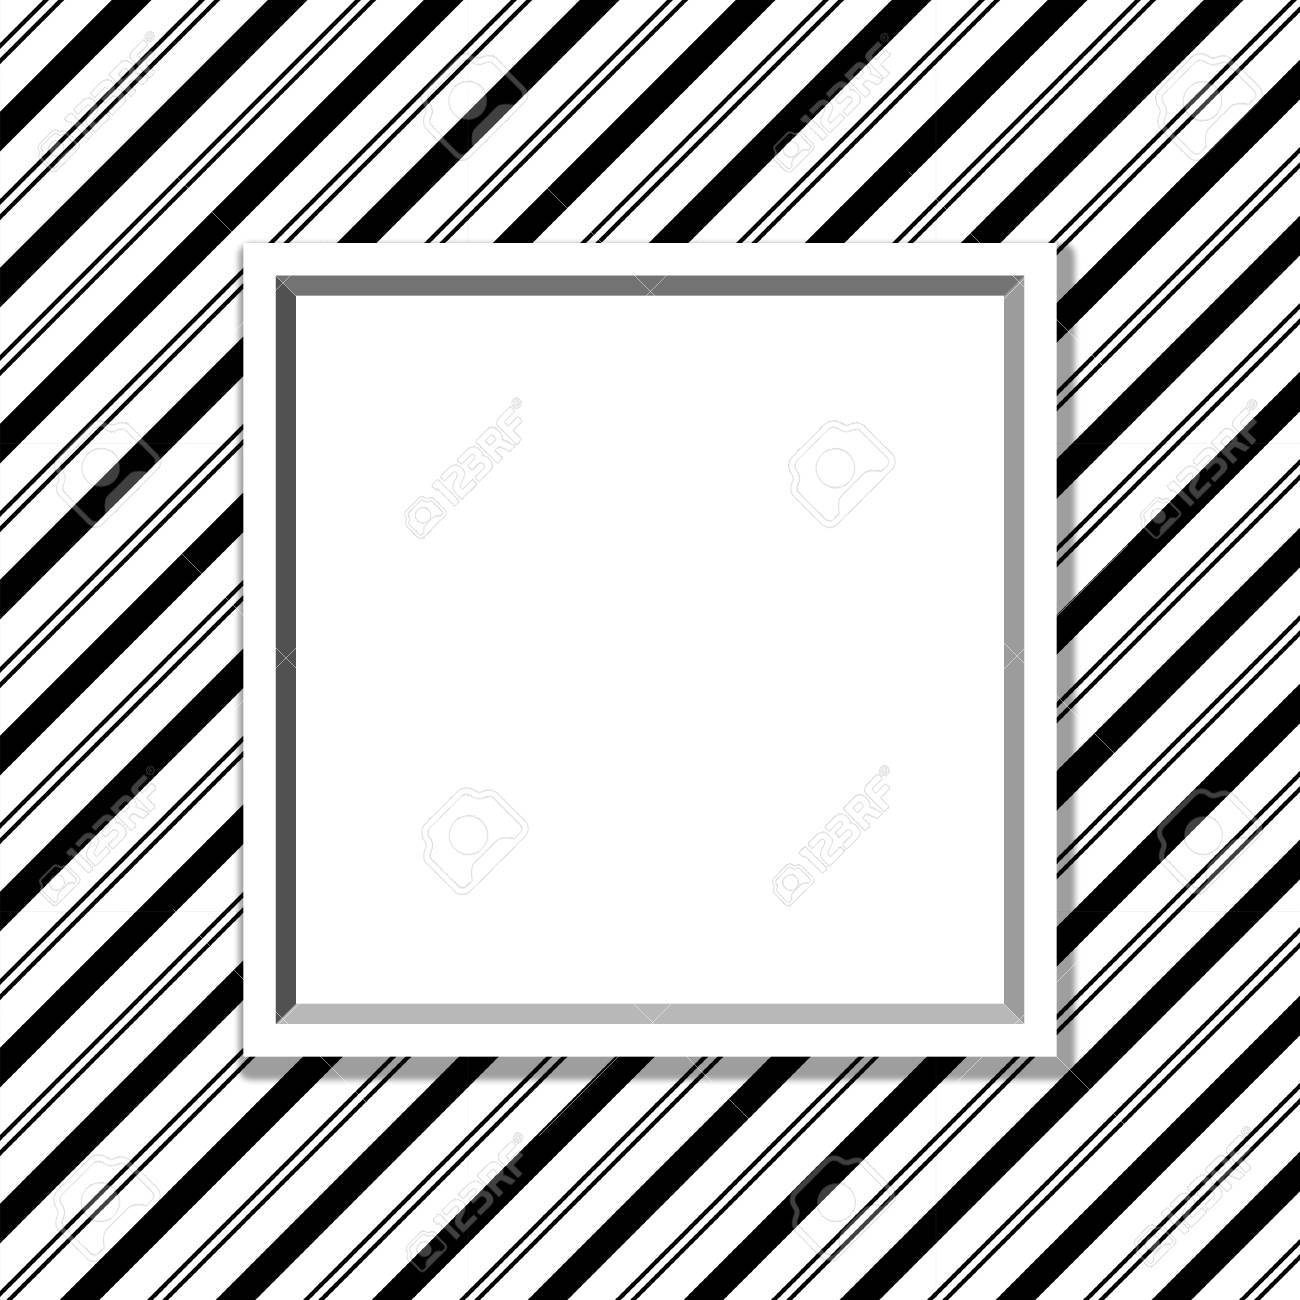 Black And White Striped Background With Frame With Center For